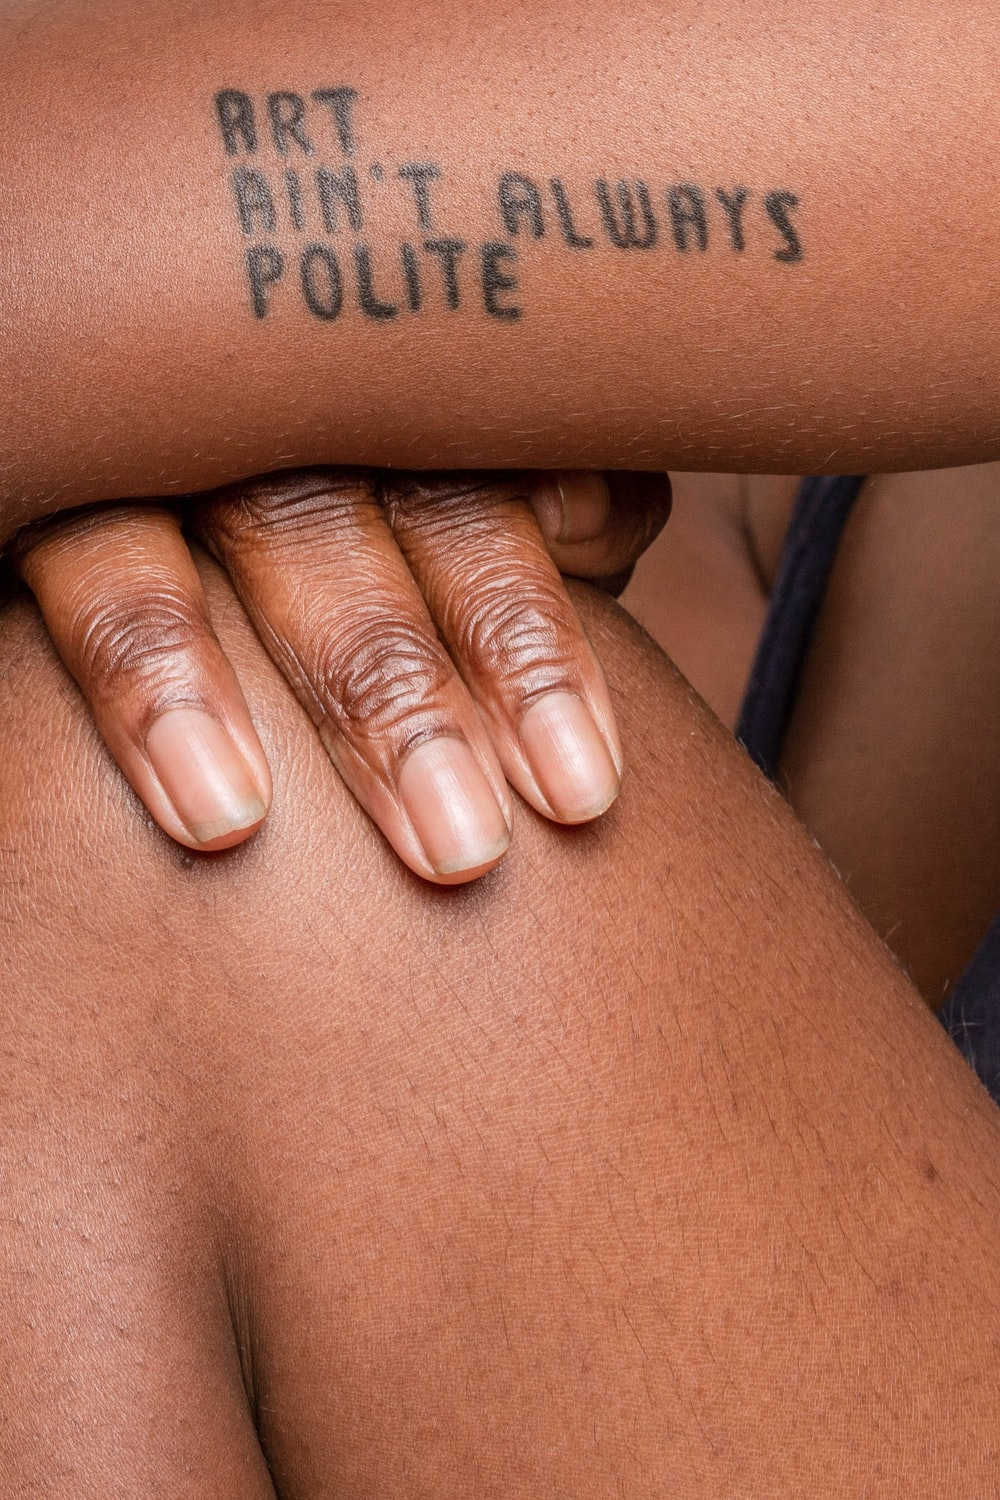 person showing Art Ain't Always Polite tattoo